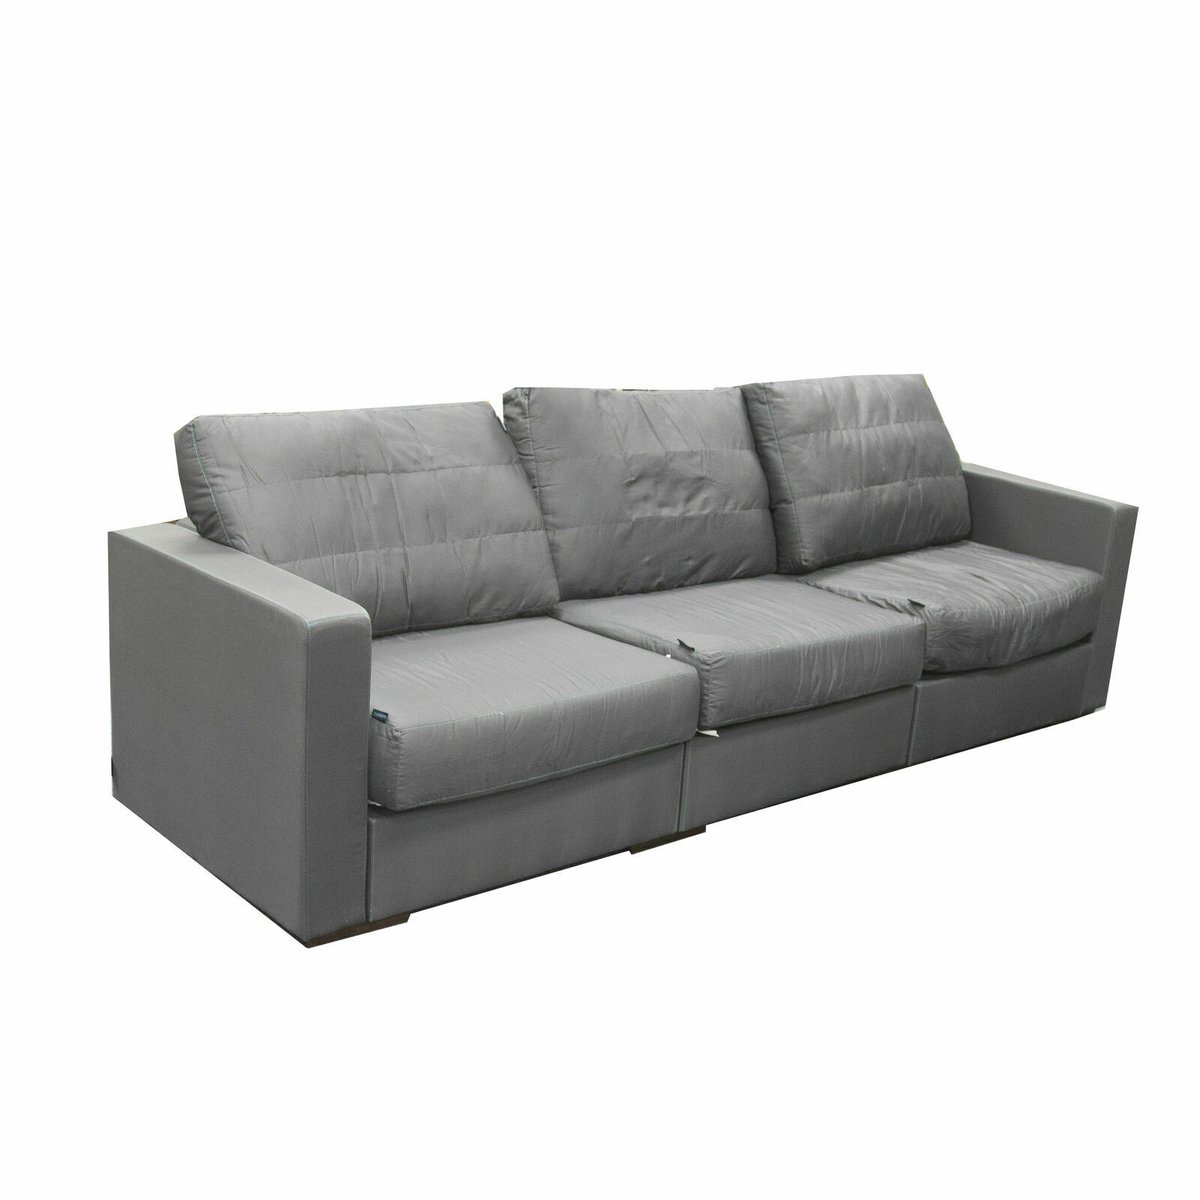 Sectional Couch 3 Seats + 5 Sides - Floor Model in Box - Grey | eBay...